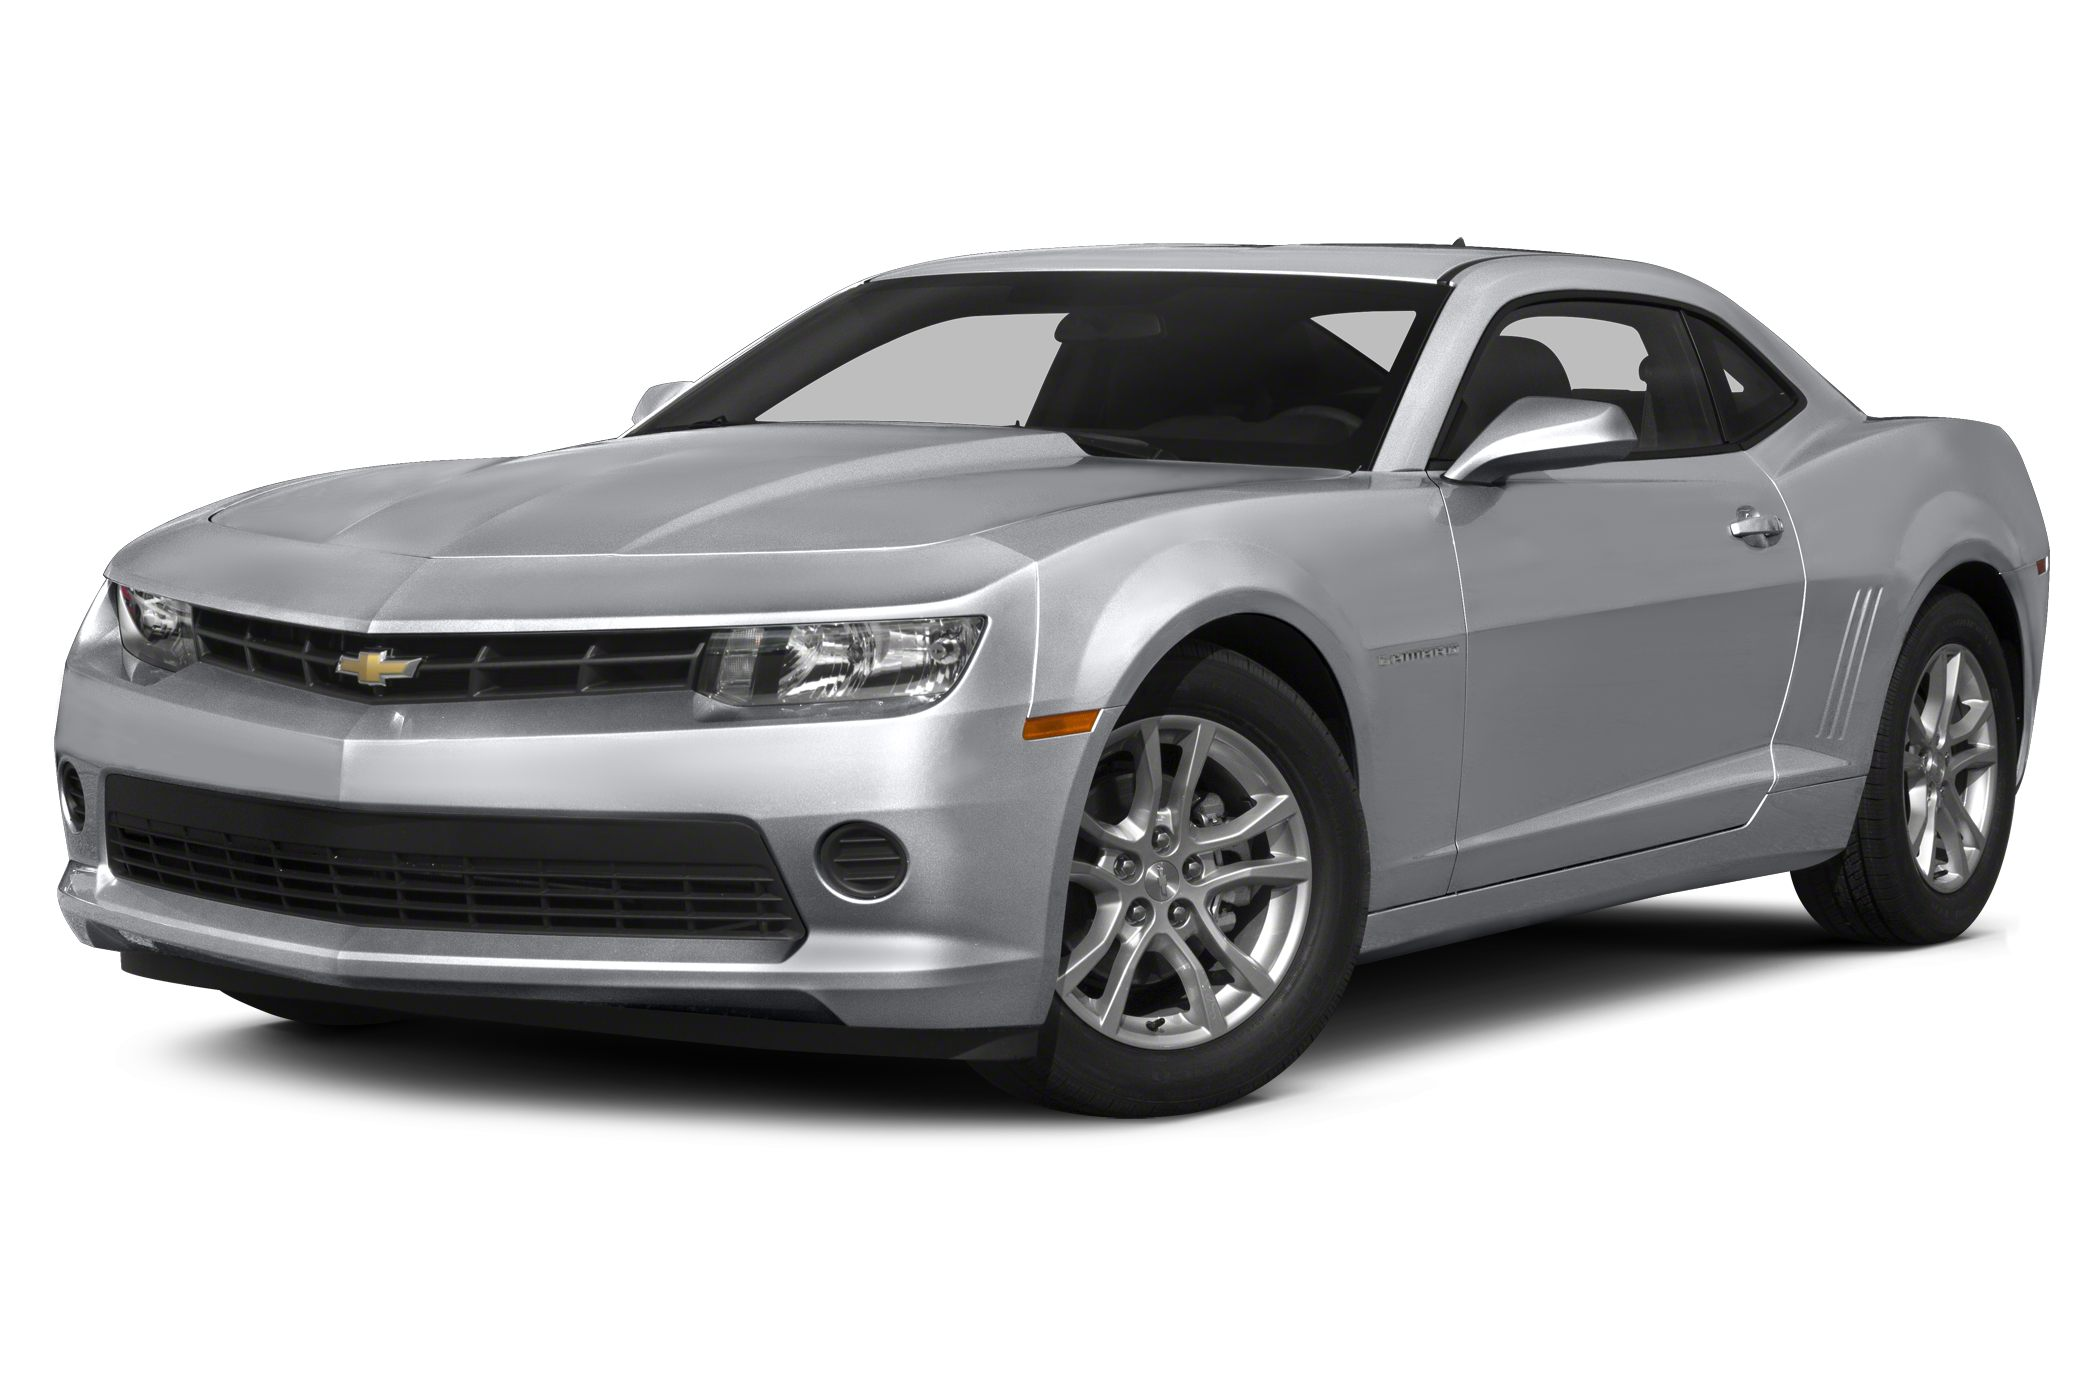 2015 Chevrolet Camaro 1LT Coupe for sale in Los Lunas for $28,850 with 0 miles